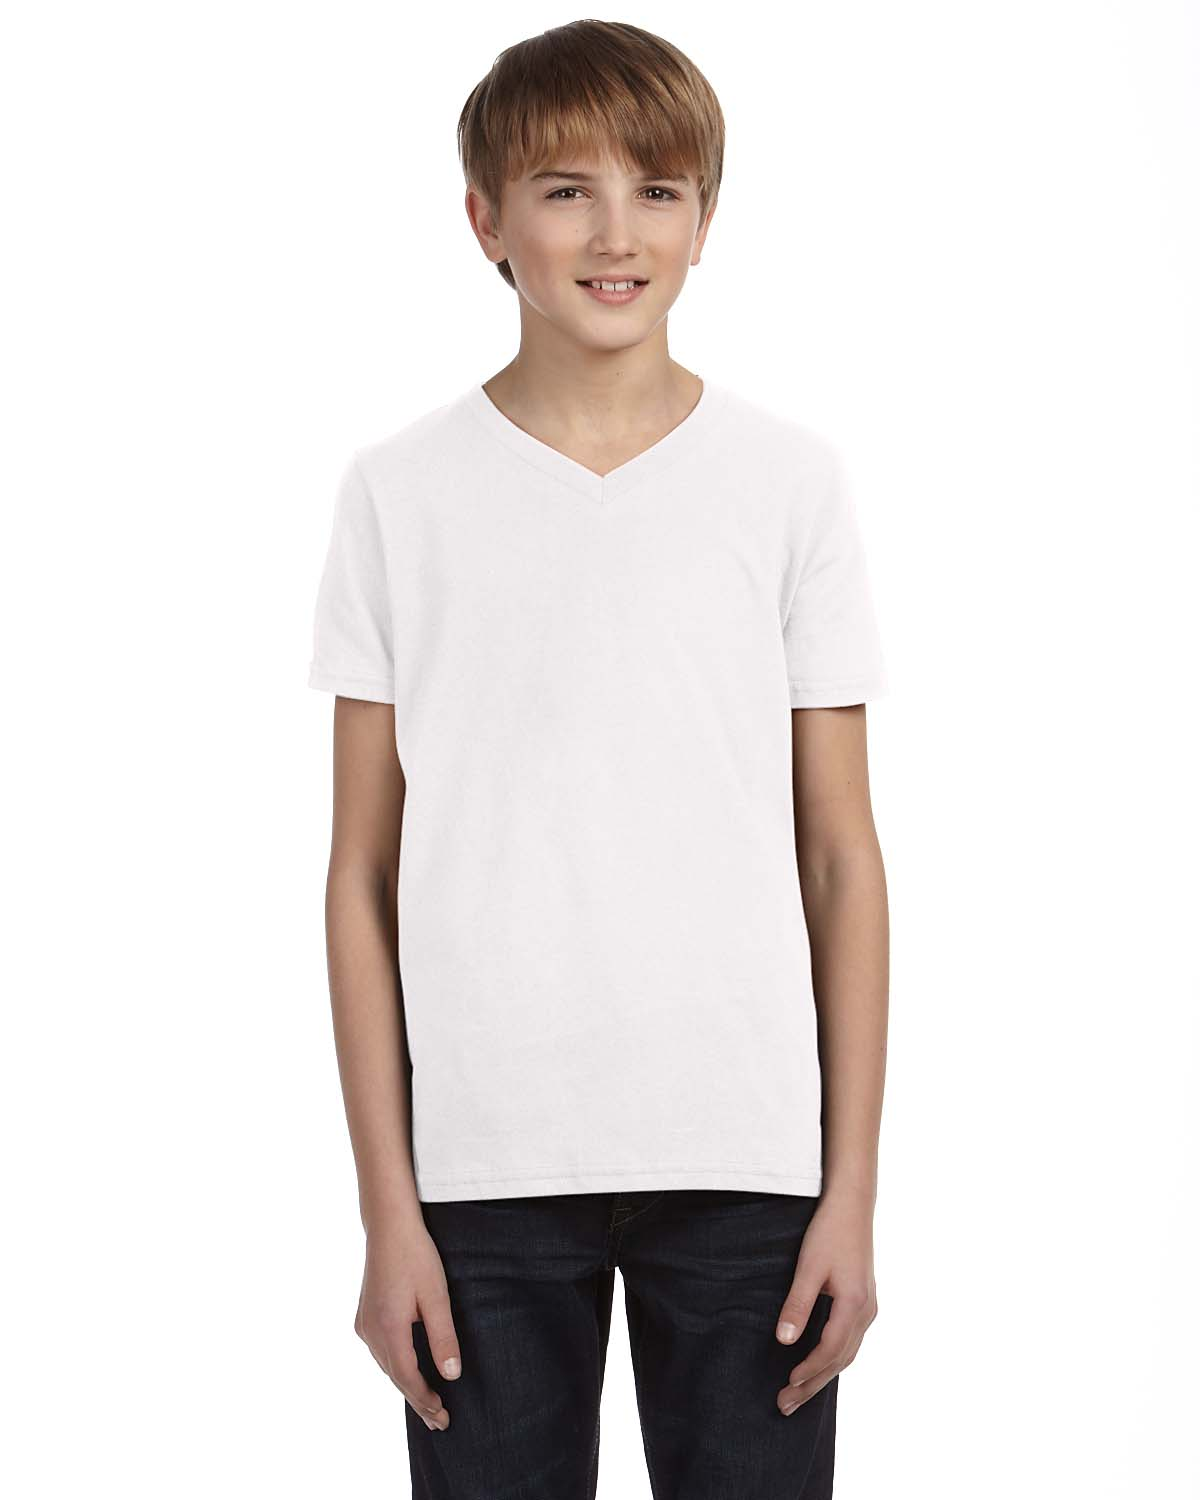 Free shipping BOTH ways on kids v neck t shirts, from our vast selection of styles. Fast delivery, and 24/7/ real-person service with a smile. Click or call